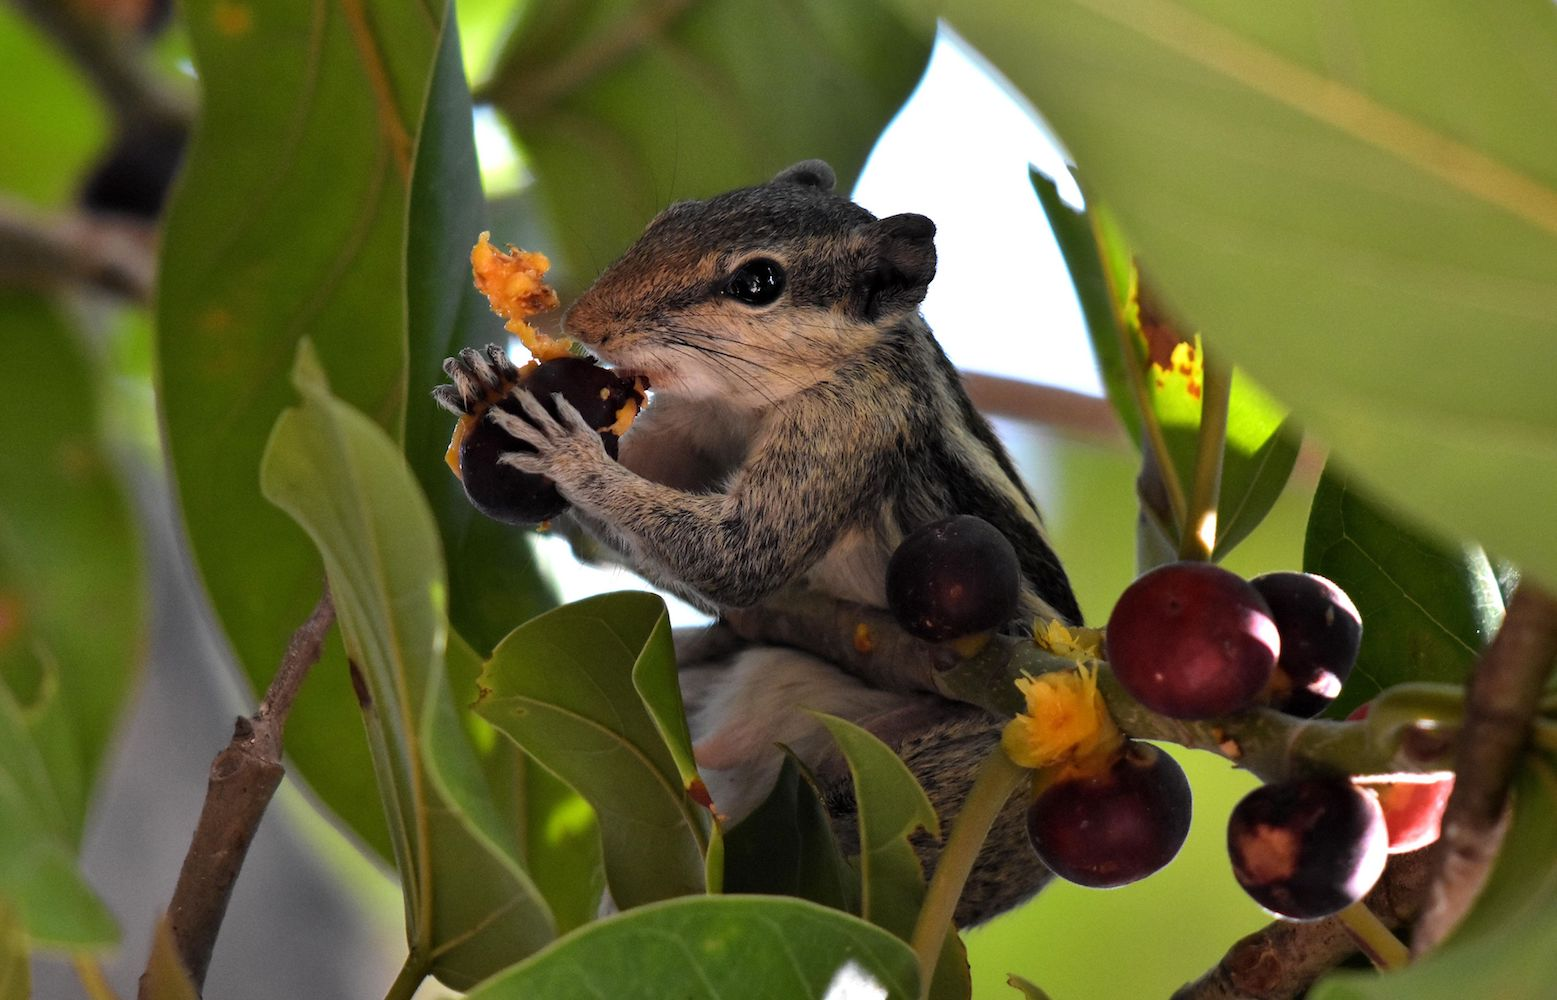 An Indian palm squirrel eats a Banyan tree fruit as it sits on the branch of a tree in Bhubaneswar on April 13, 2018. The Indian palm squirrel is naturally found in parts of India and Sri Lanka. / AFP PHOTO / ASIT KUMAR        (Photo credit should read ASIT KUMAR/AFP/Getty Images)